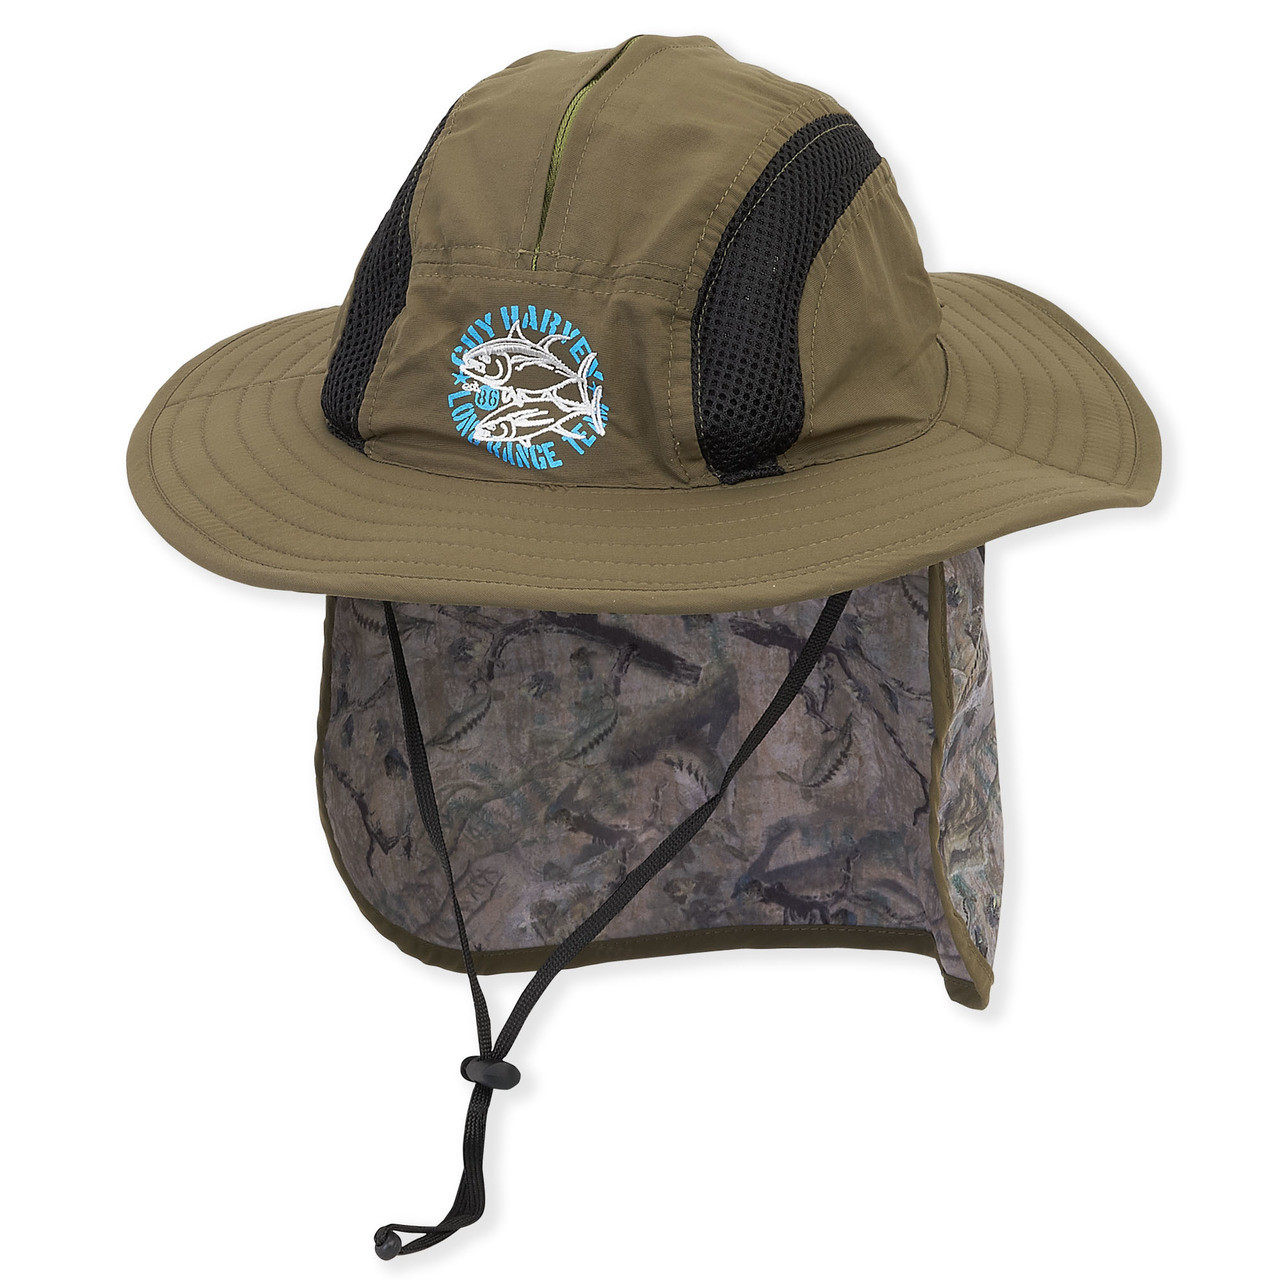 Guy Harvey HAT W CHIN CORD   Camo Flap - Sun  N  Sand Accessories b320951076b9